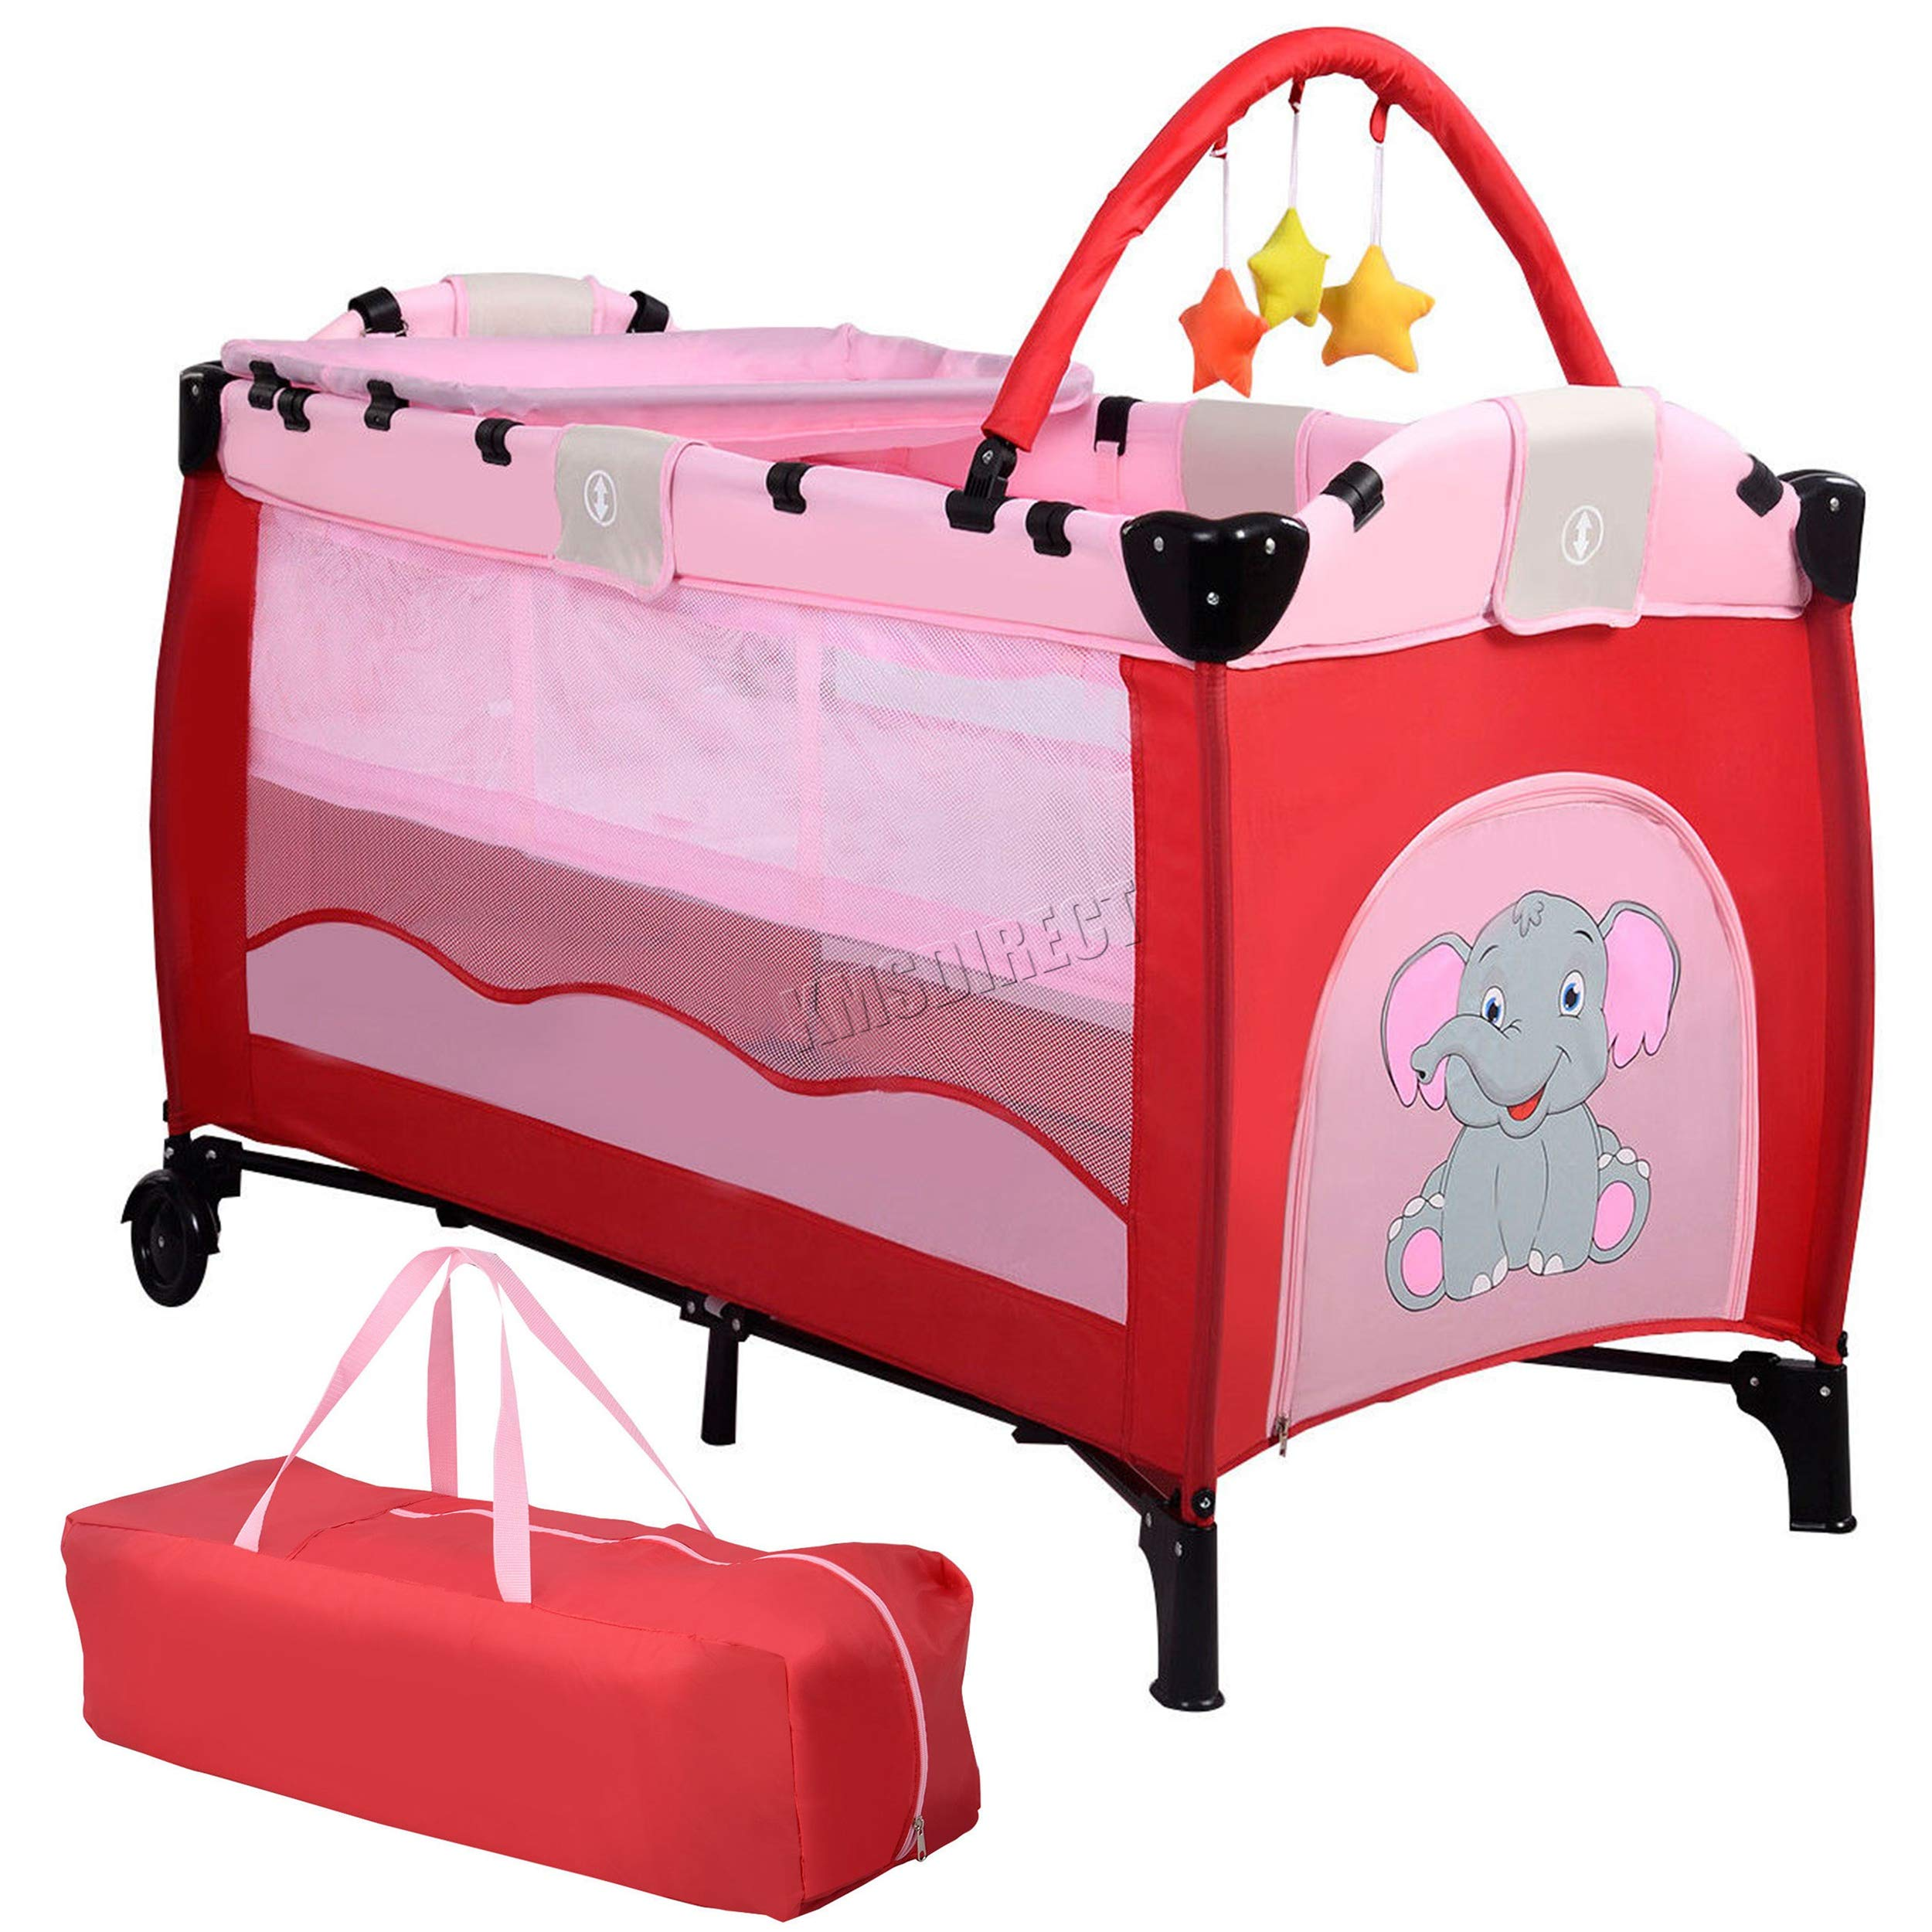 new style 26e2a dd3cb FoxHunter Portable Baby Cot Sleeping Bed Kids Infant Playpen Bassinet Child  Play Pen with Entryway Travel BCB01 Pink